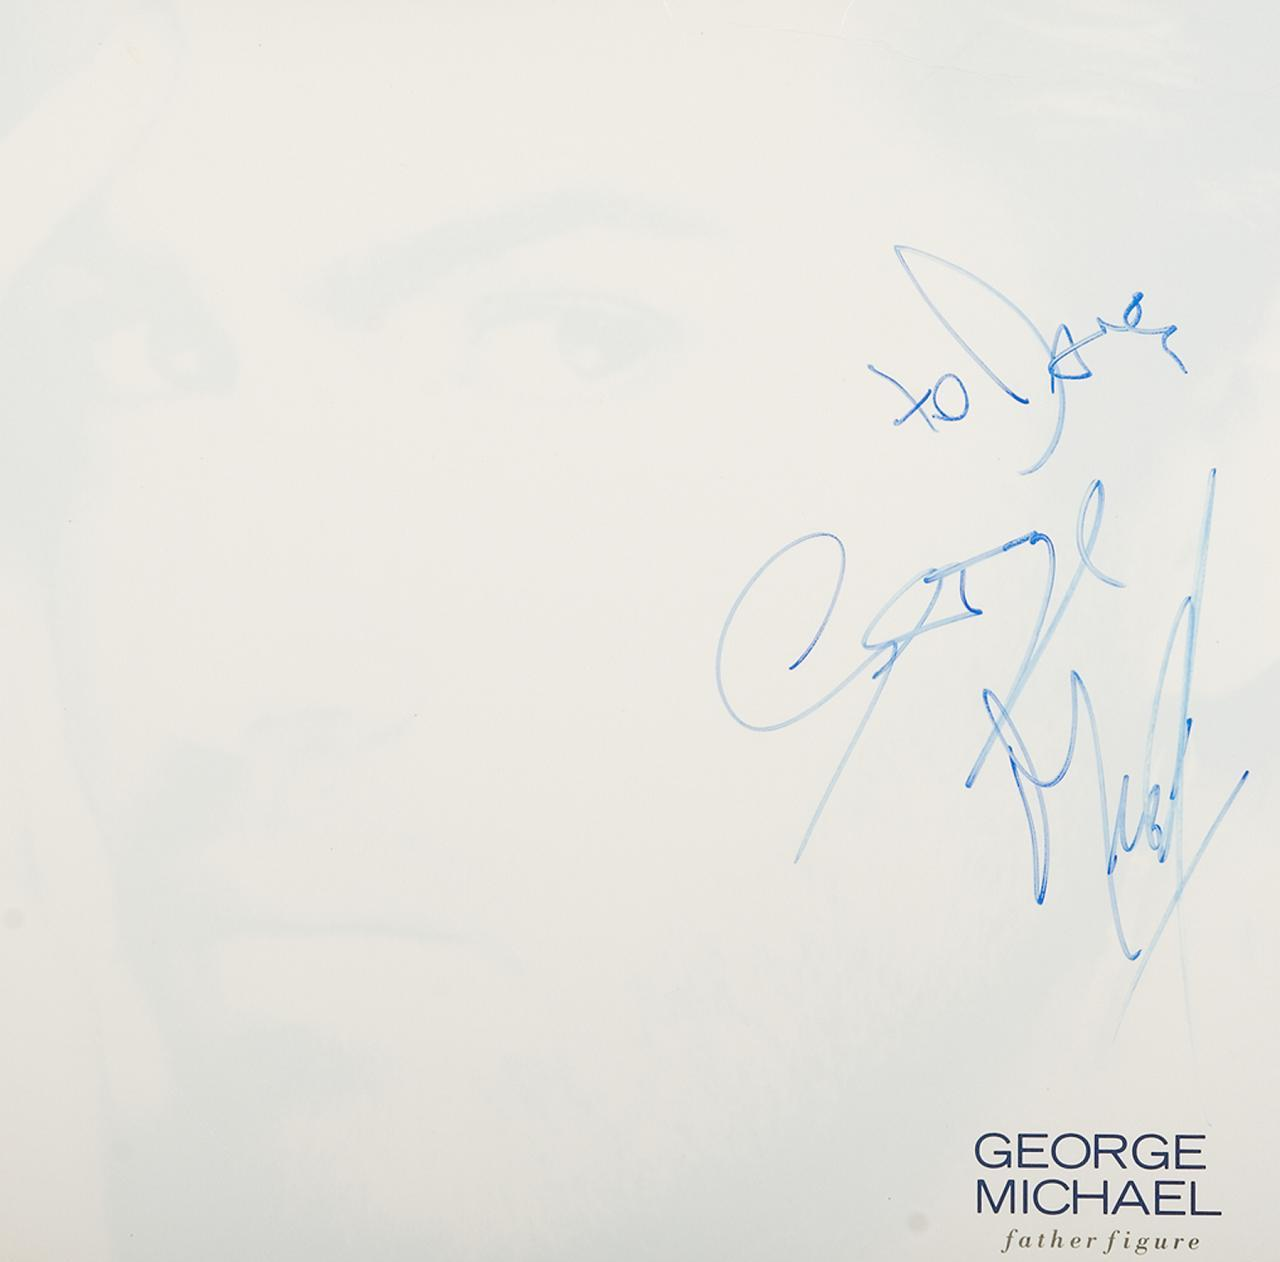 George Michael Signed Father Figure Album Pers Memorabilia Expert,Furnishing A New Home